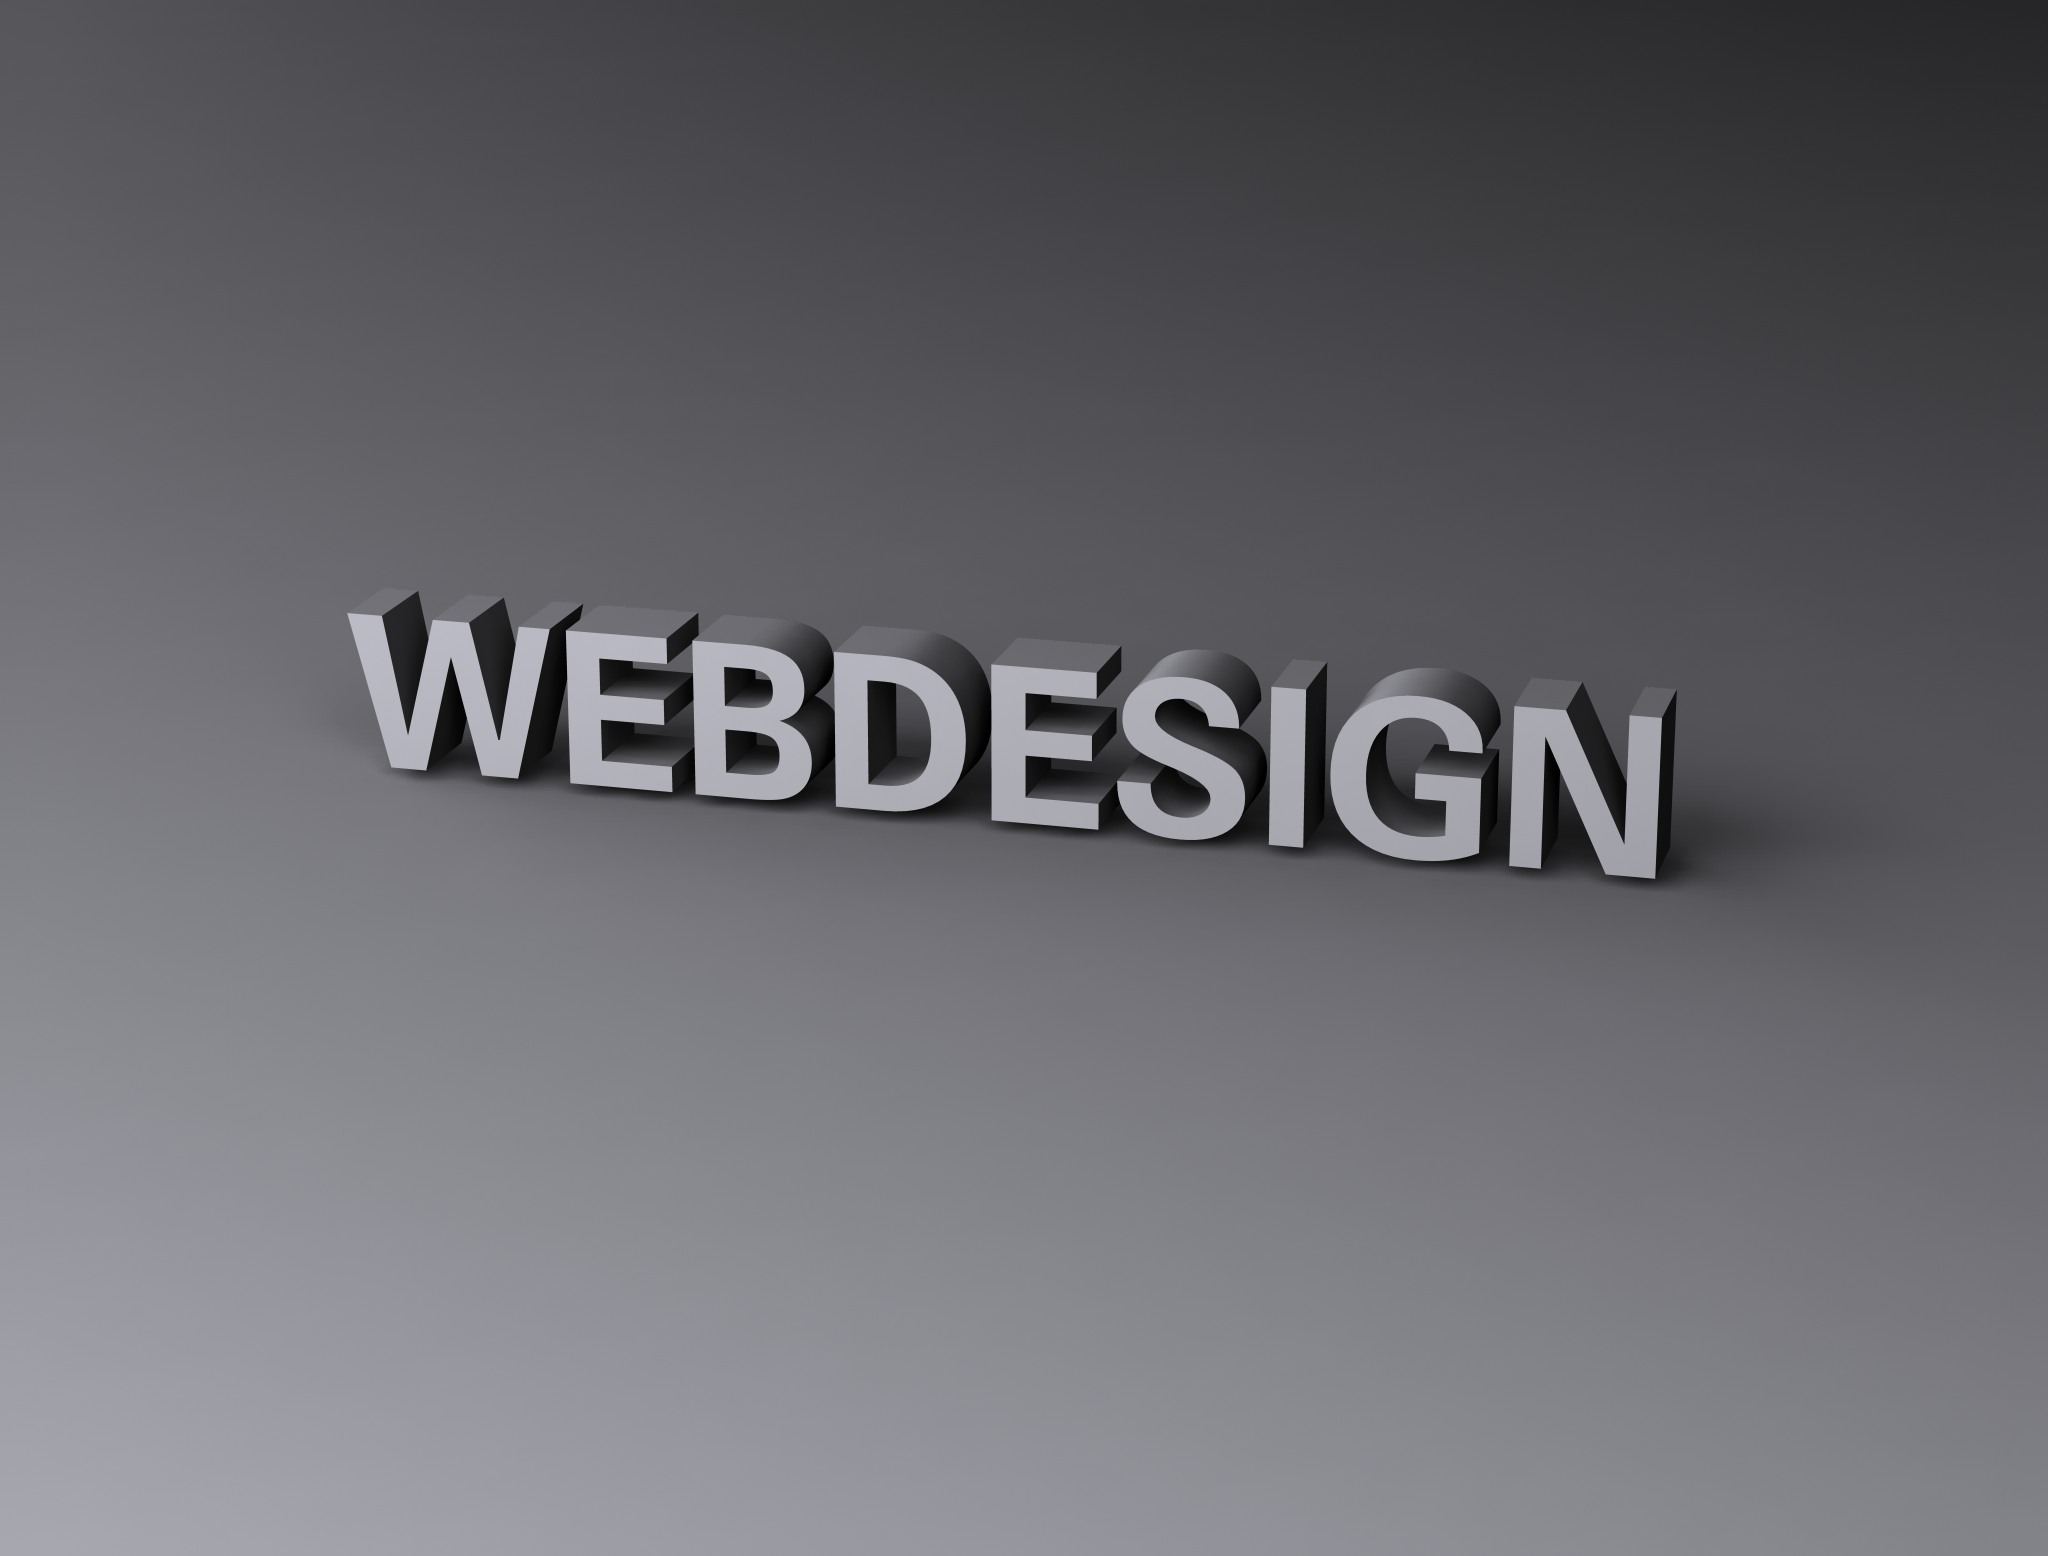 Webdesign, 3d, Render, Text, Typography, HQ Photo